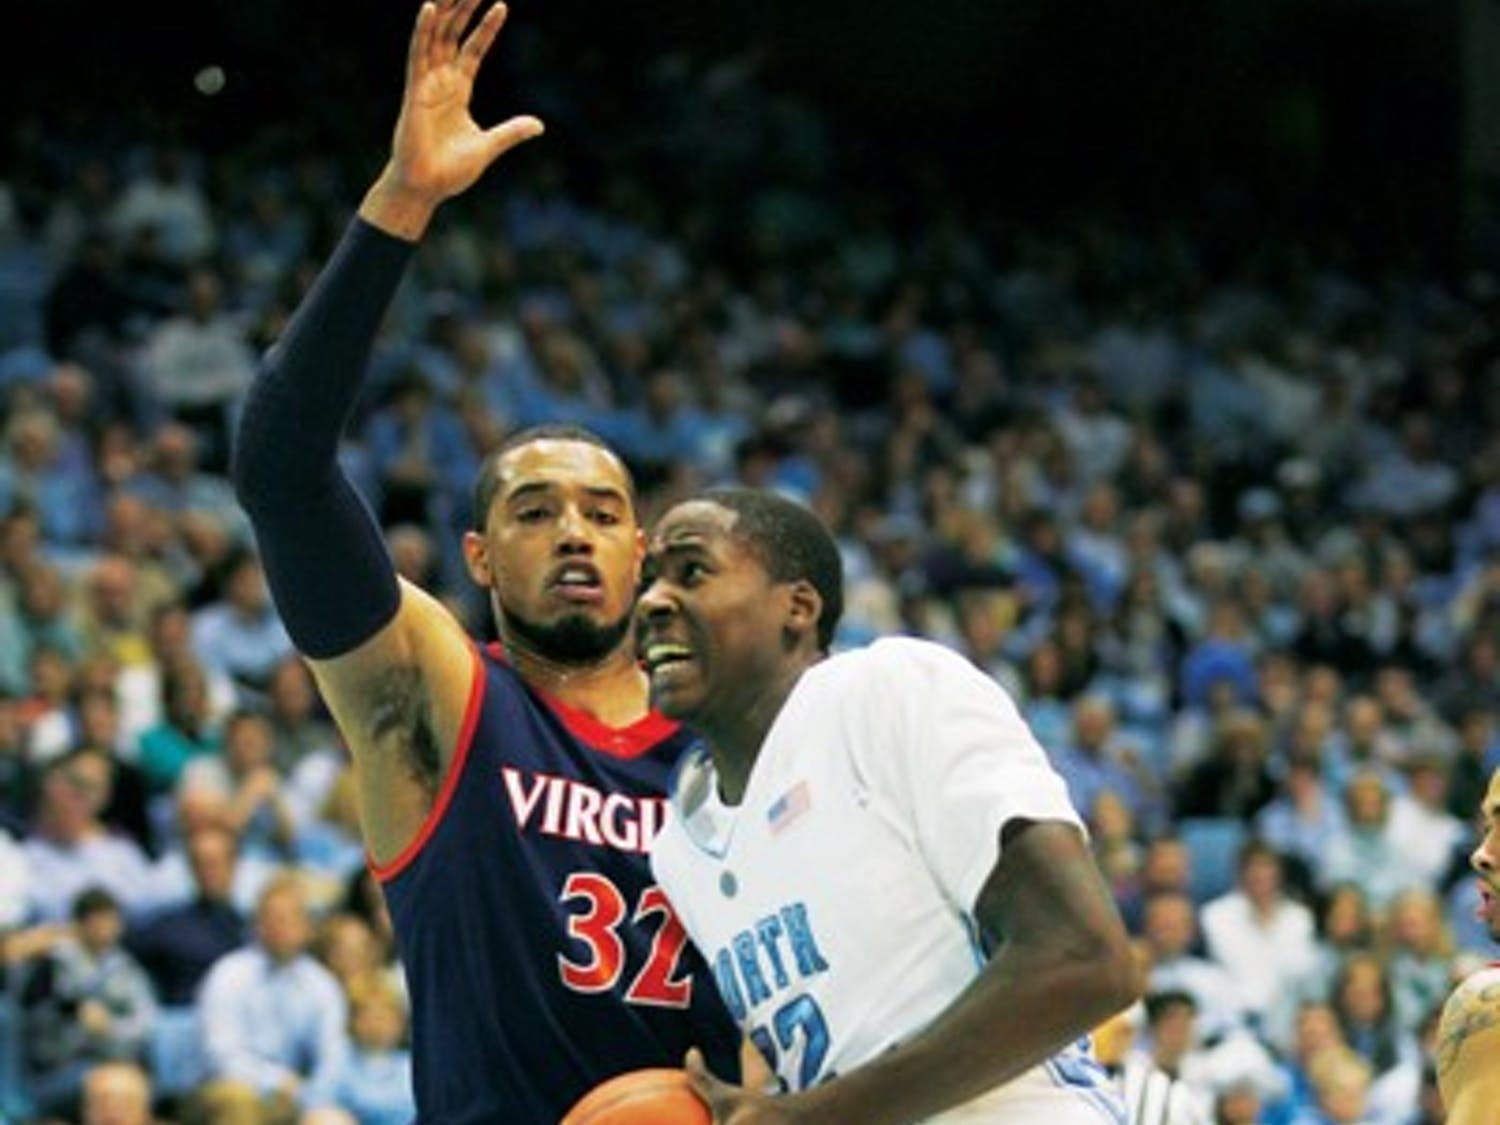 Ed Davis, usually one of UNC's leading scorers, contributed only 4 points in Sunday's loss to Virginia. DTH/Will Cooper